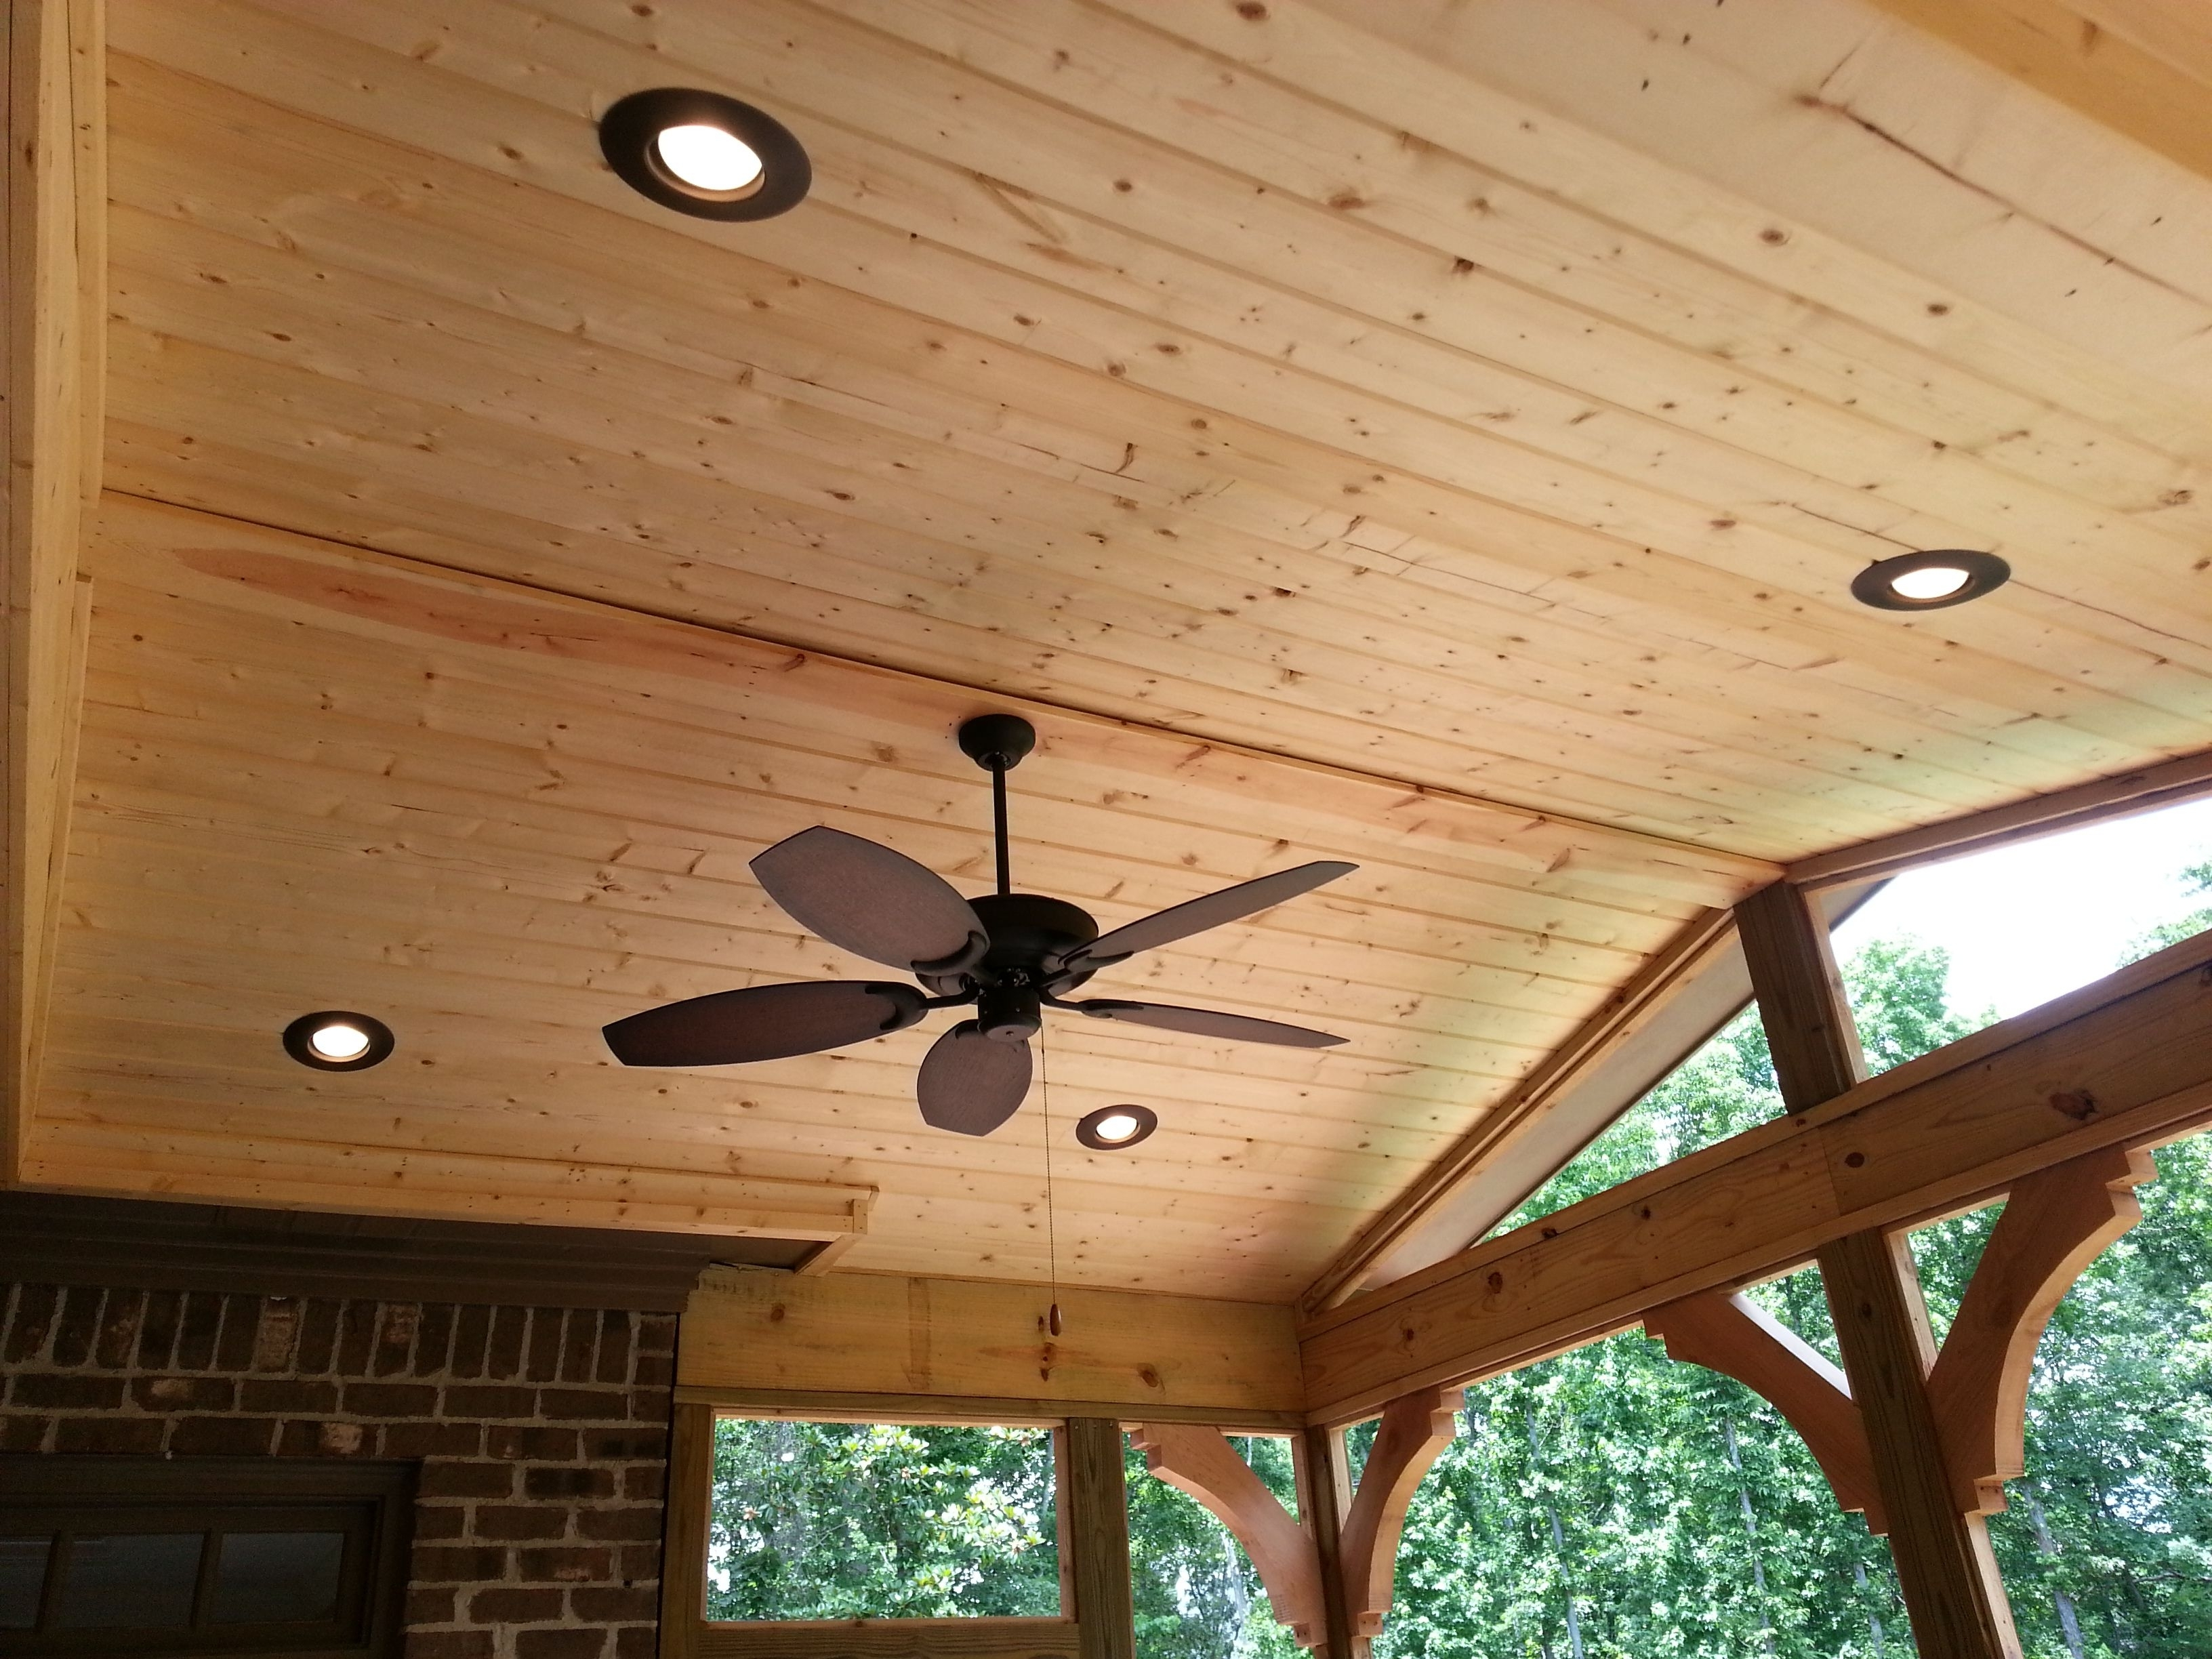 Finished Ceiling With Ceiling Fan And Can Lights – Design Ideas Inside Fashionable Outdoor Ceiling Fan Under Deck (View 20 of 20)